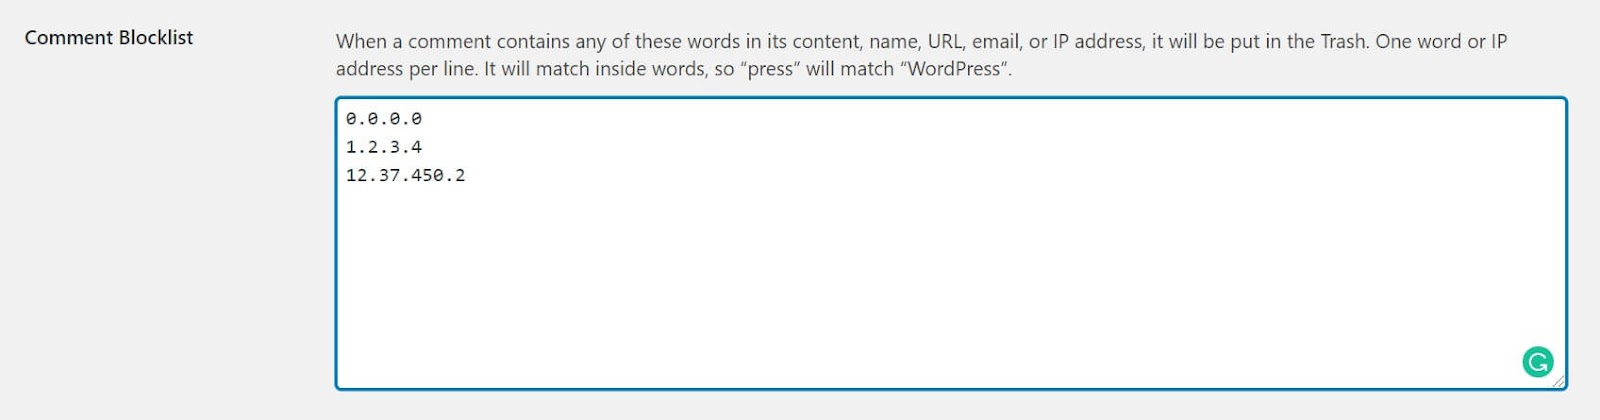 Screenshot showing how to add IP addresses to the comment blocklist in WordPress